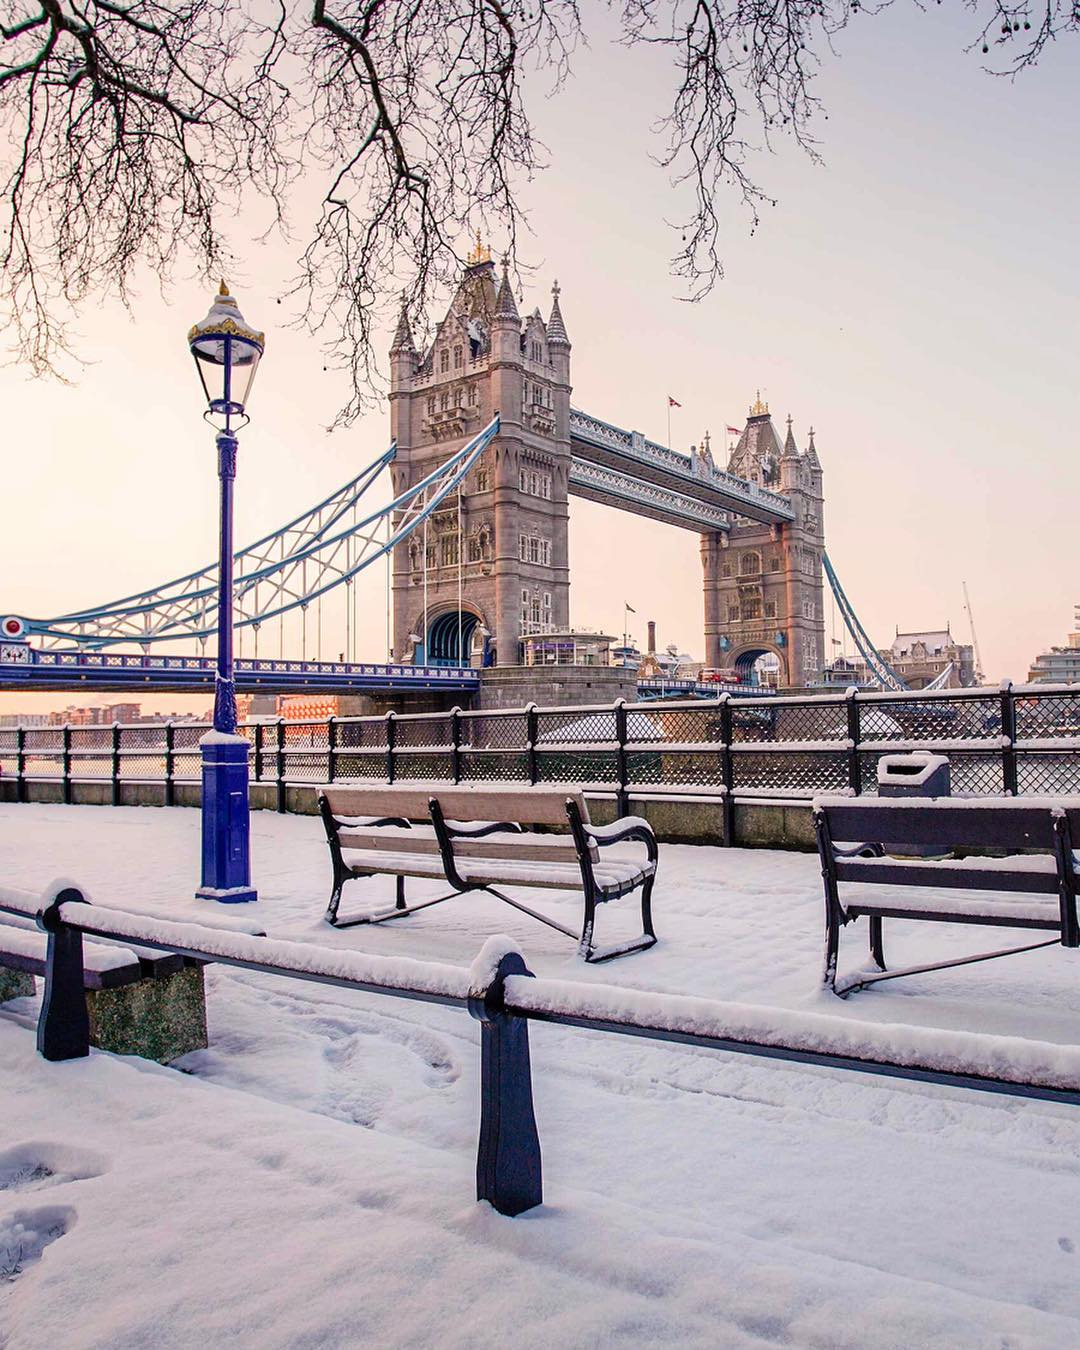 snowy-tower-bridge